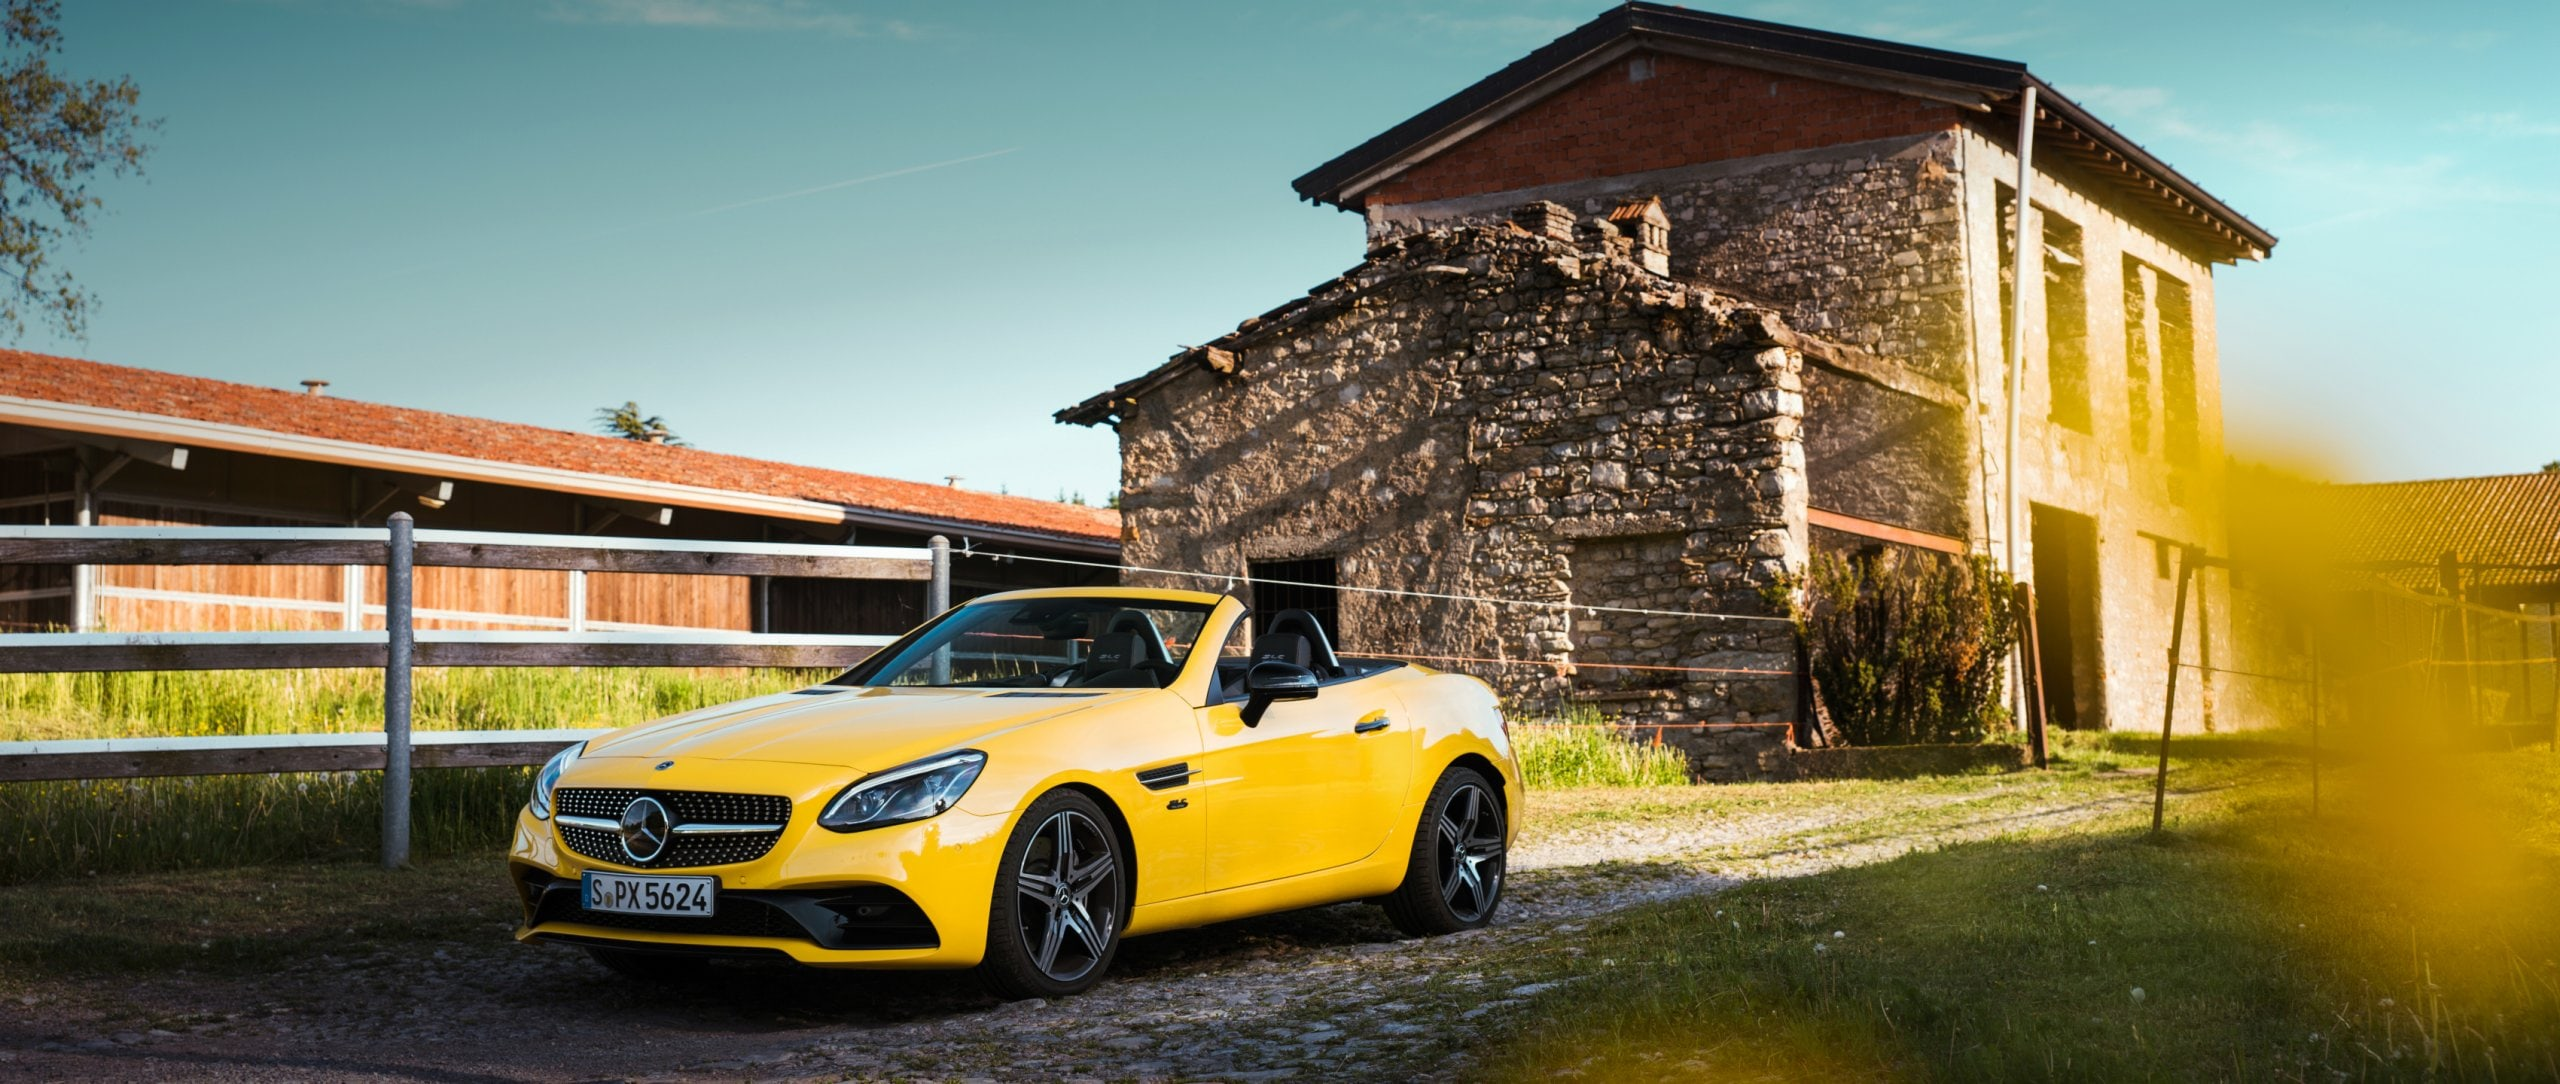 The Mercedes-Benz SLC 300 Final Edition (R 172) in sun yellow with 18-inch AMG 5-spoke light-alloy wheels painted in titanium grey on a farm.